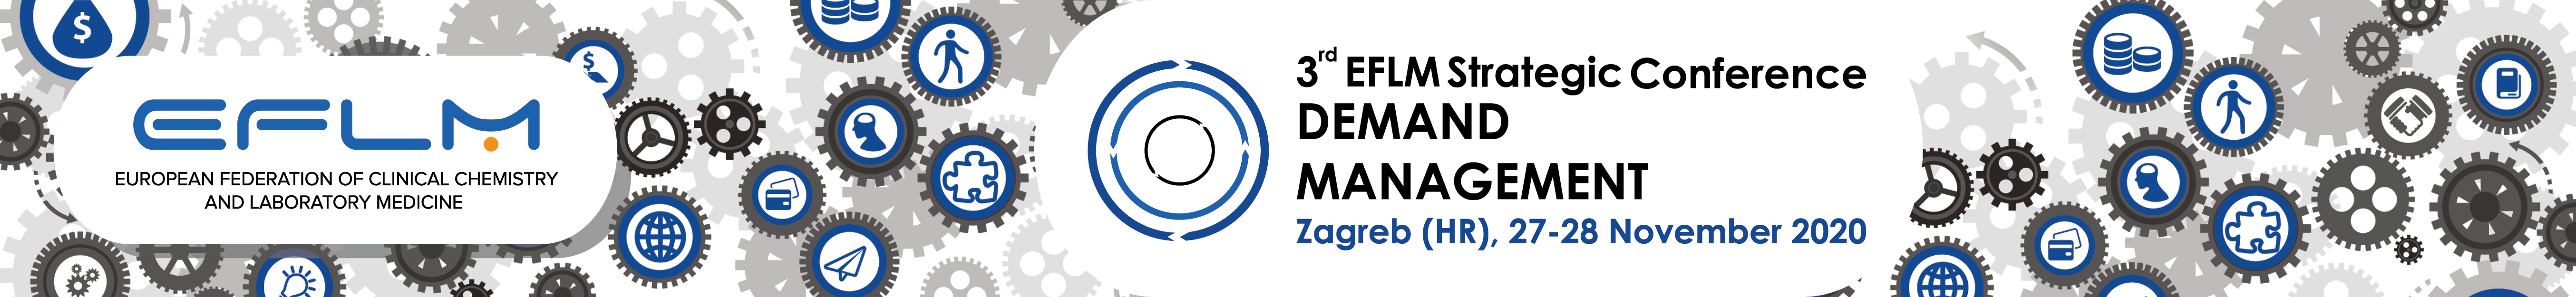 eflm-strategic-conference